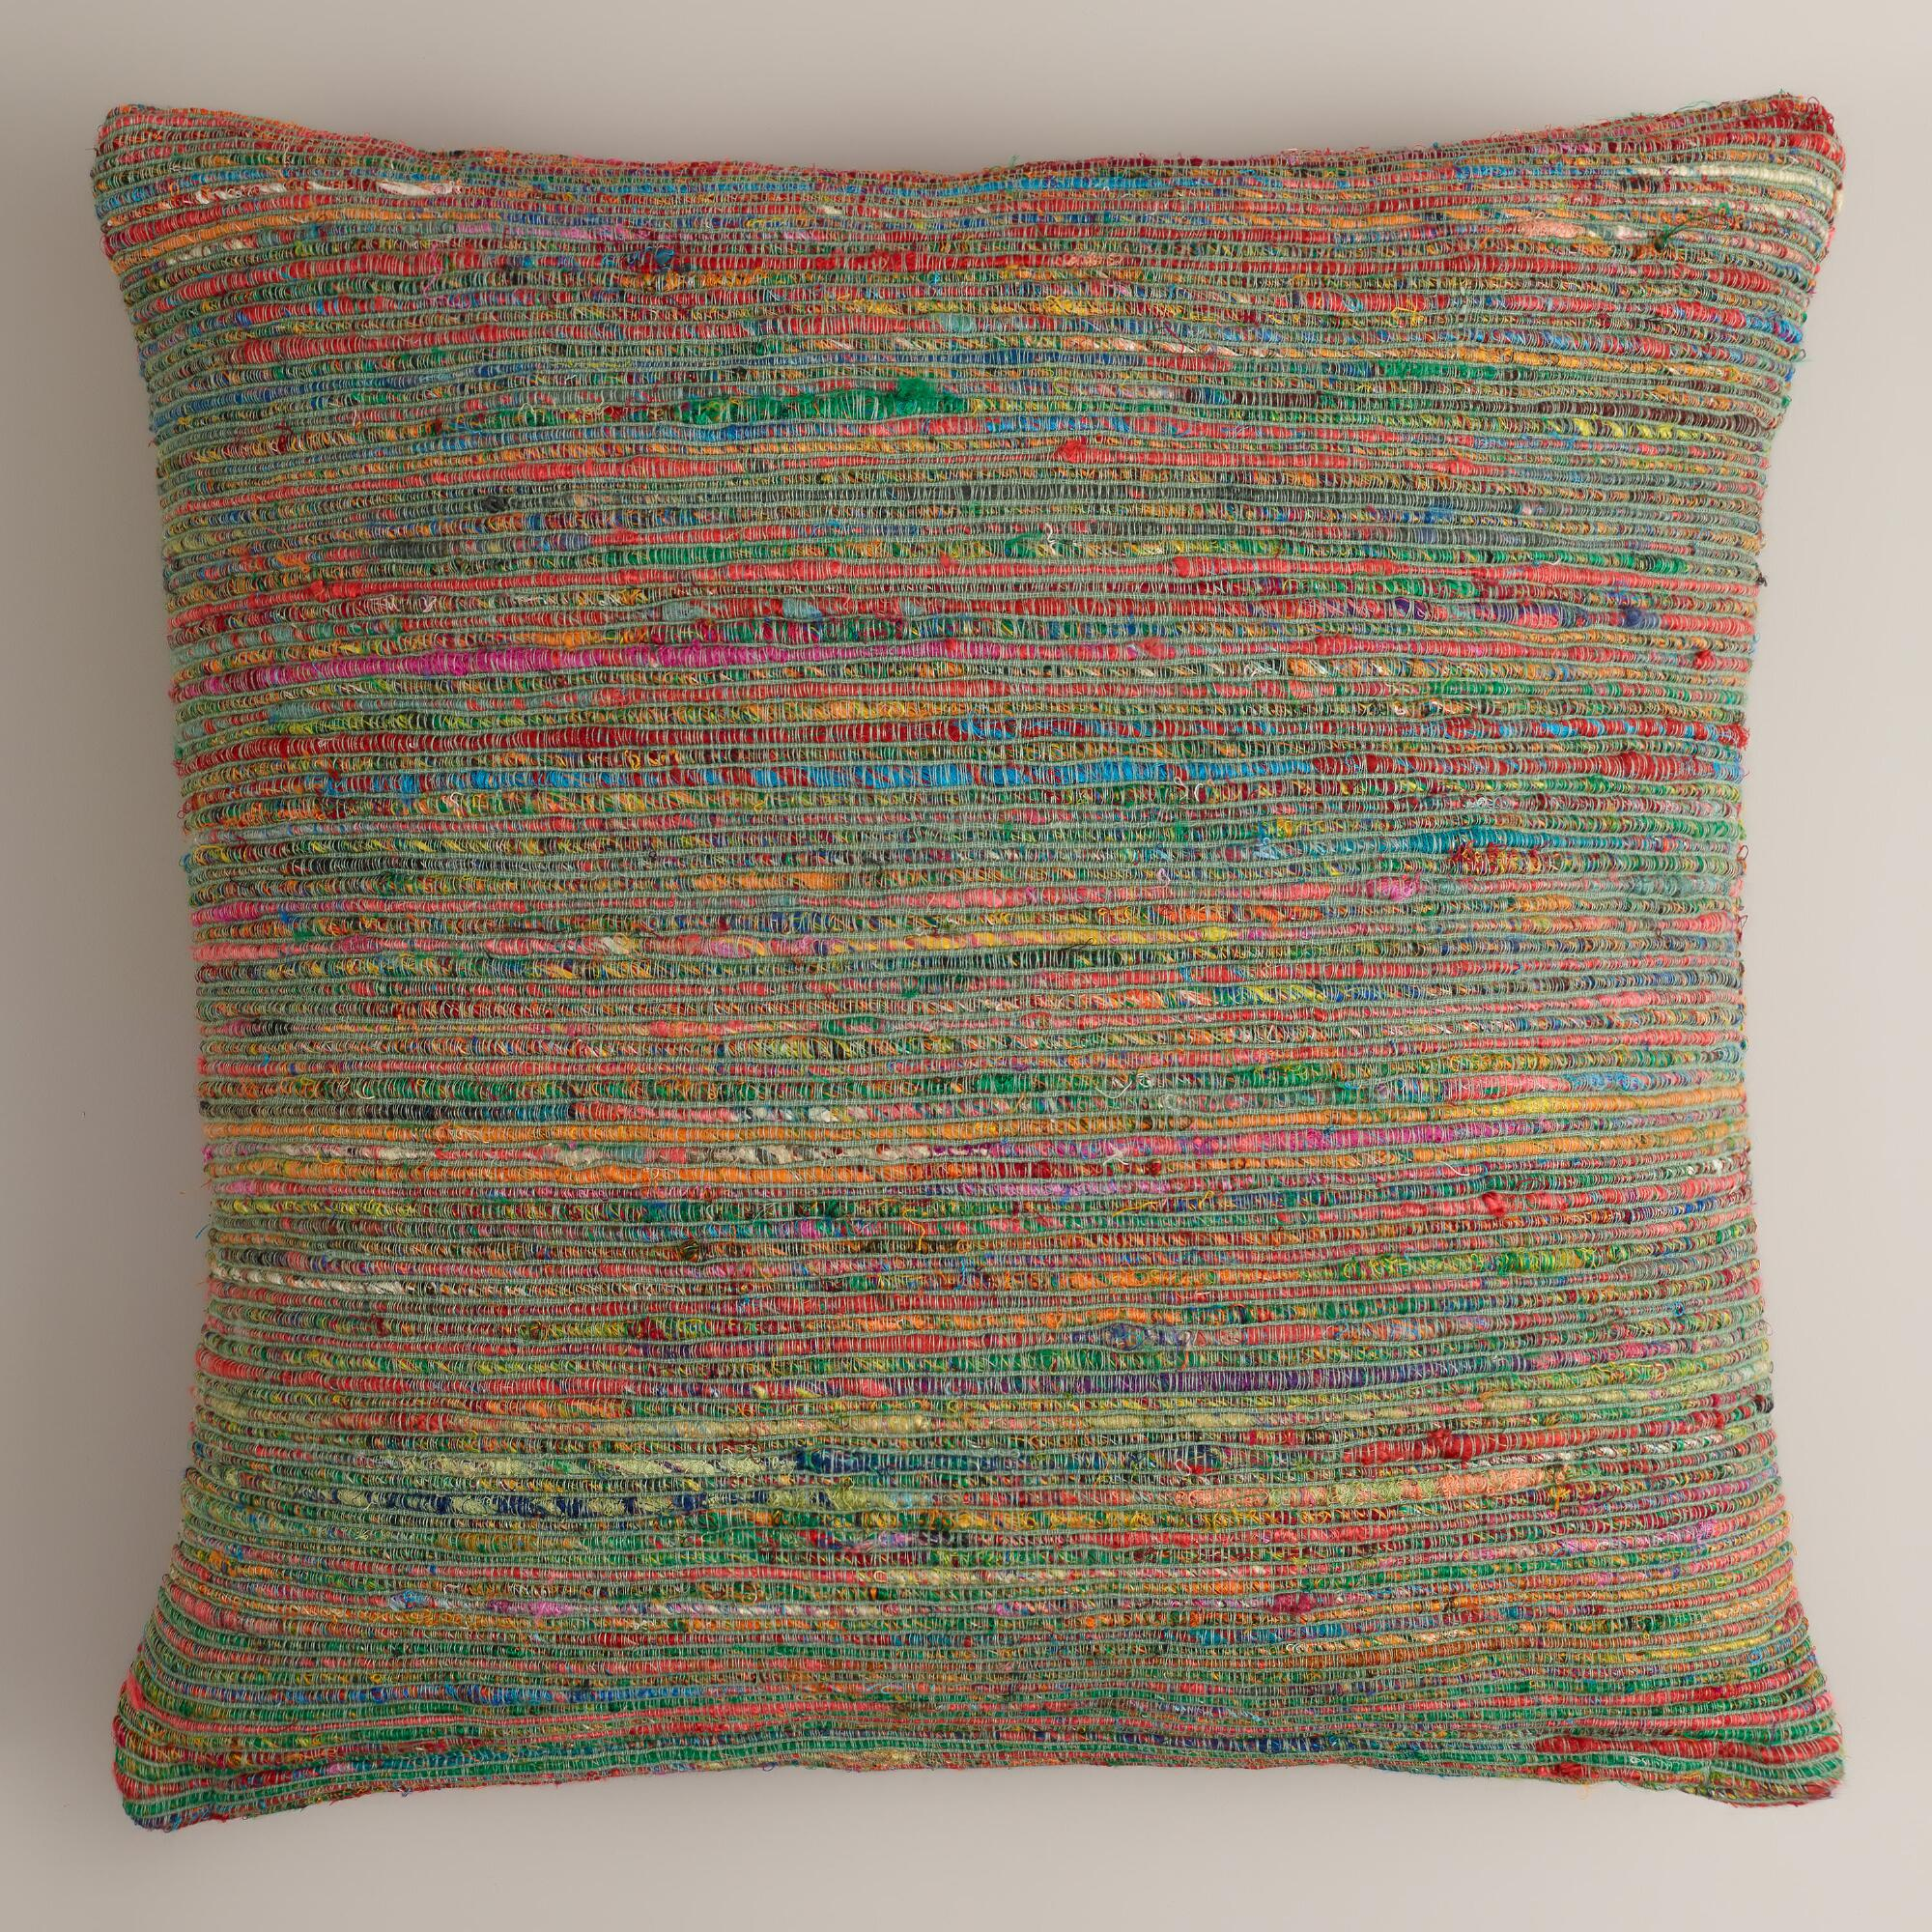 Recycle Or Throw Away Pillows : Blue Surf Recycled Sari Throw Pillow World Market